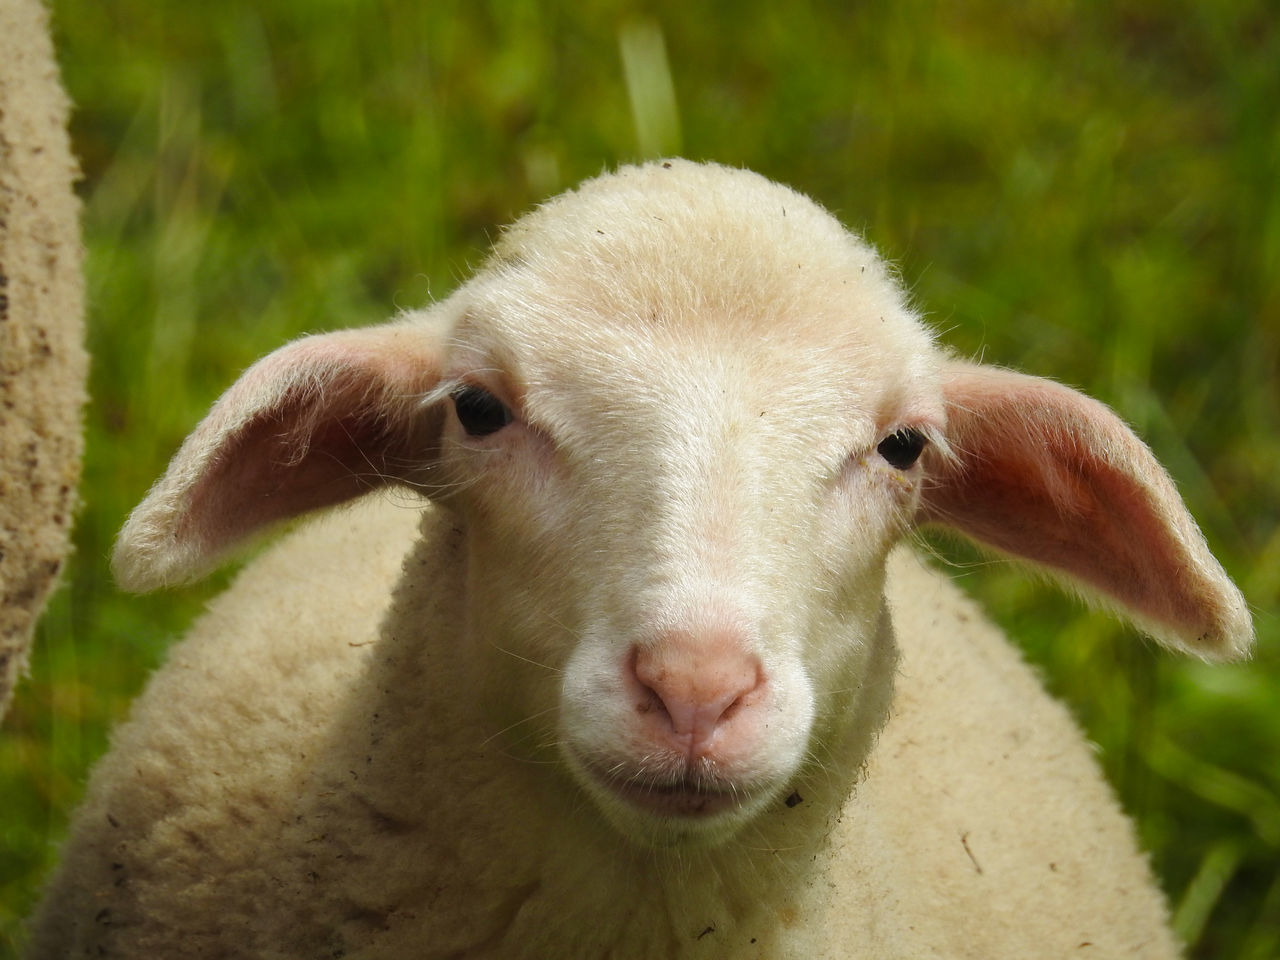 mammal, domestic animals, animal themes, animal, domestic, one animal, livestock, pets, close-up, portrait, vertebrate, looking at camera, sheep, animal body part, no people, focus on foreground, animal head, day, field, nature, herbivorous, snout, animal nose